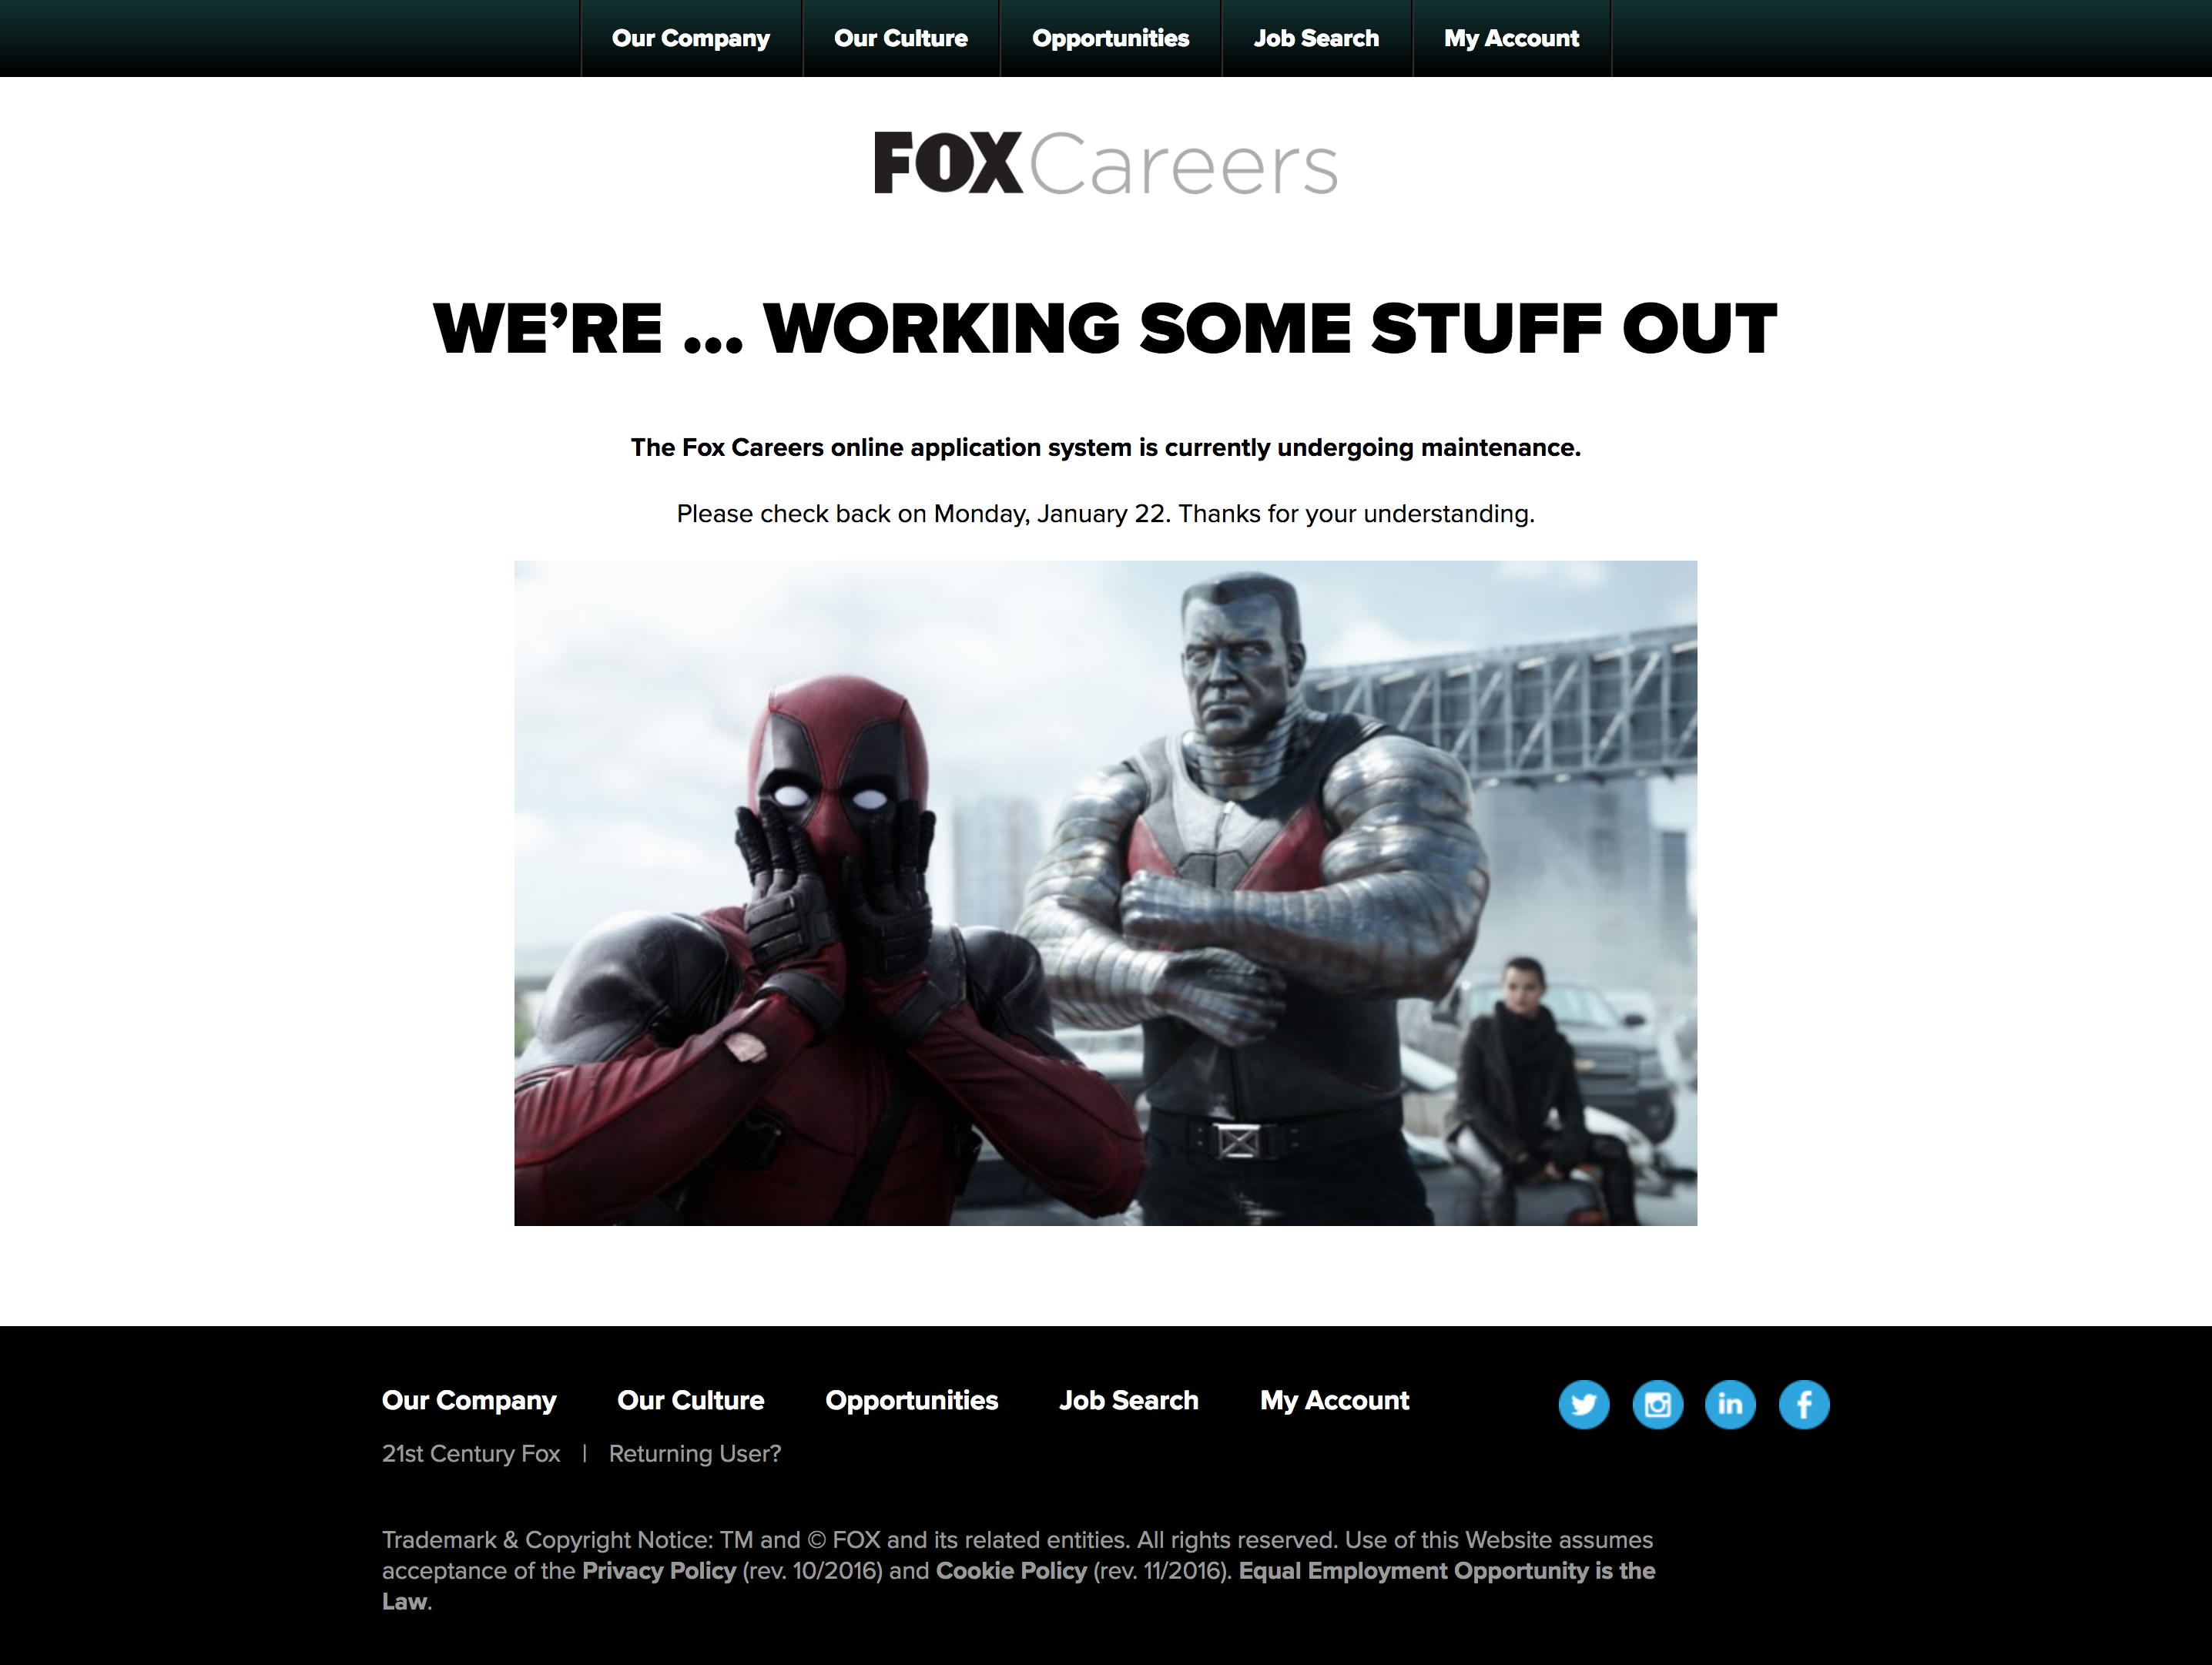 Fox Careers Website